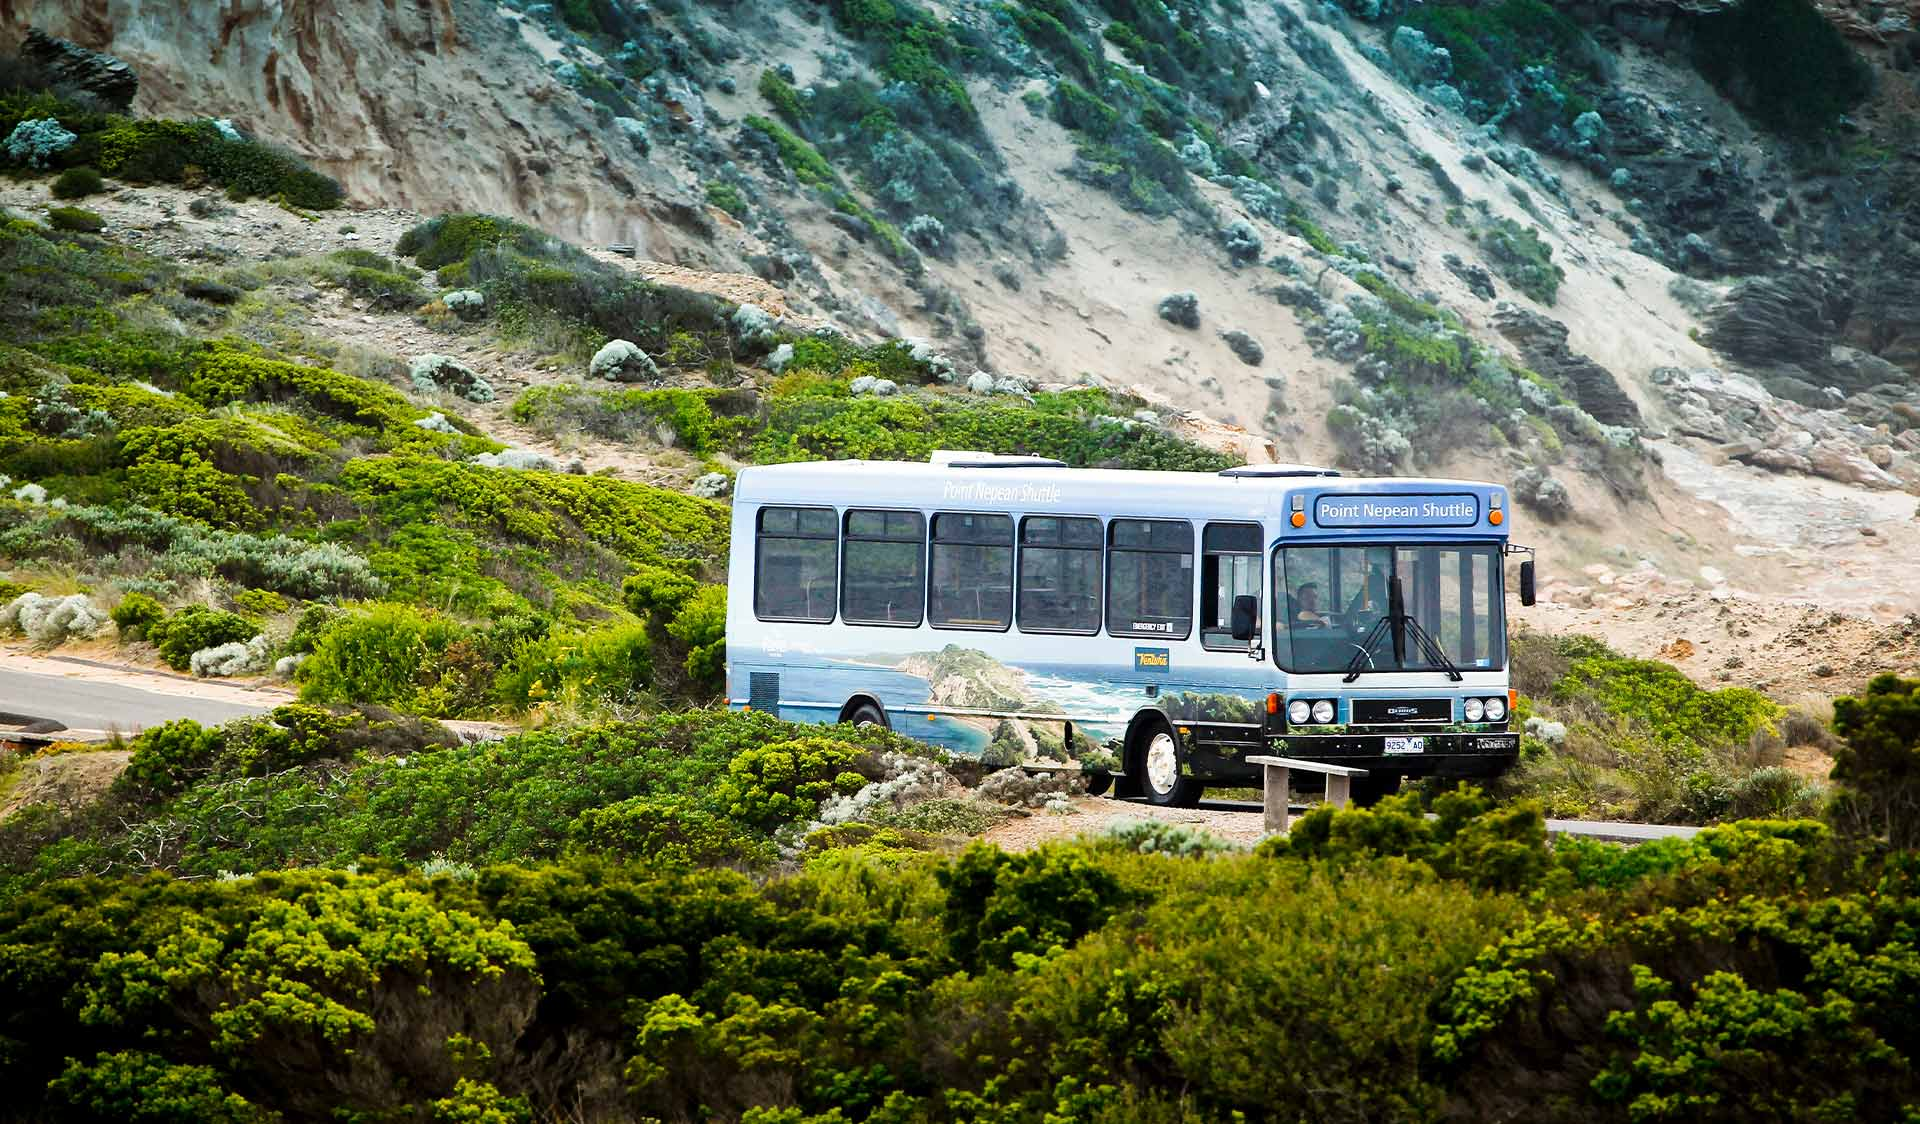 Wide shot of a bus on a road surrounded by nature